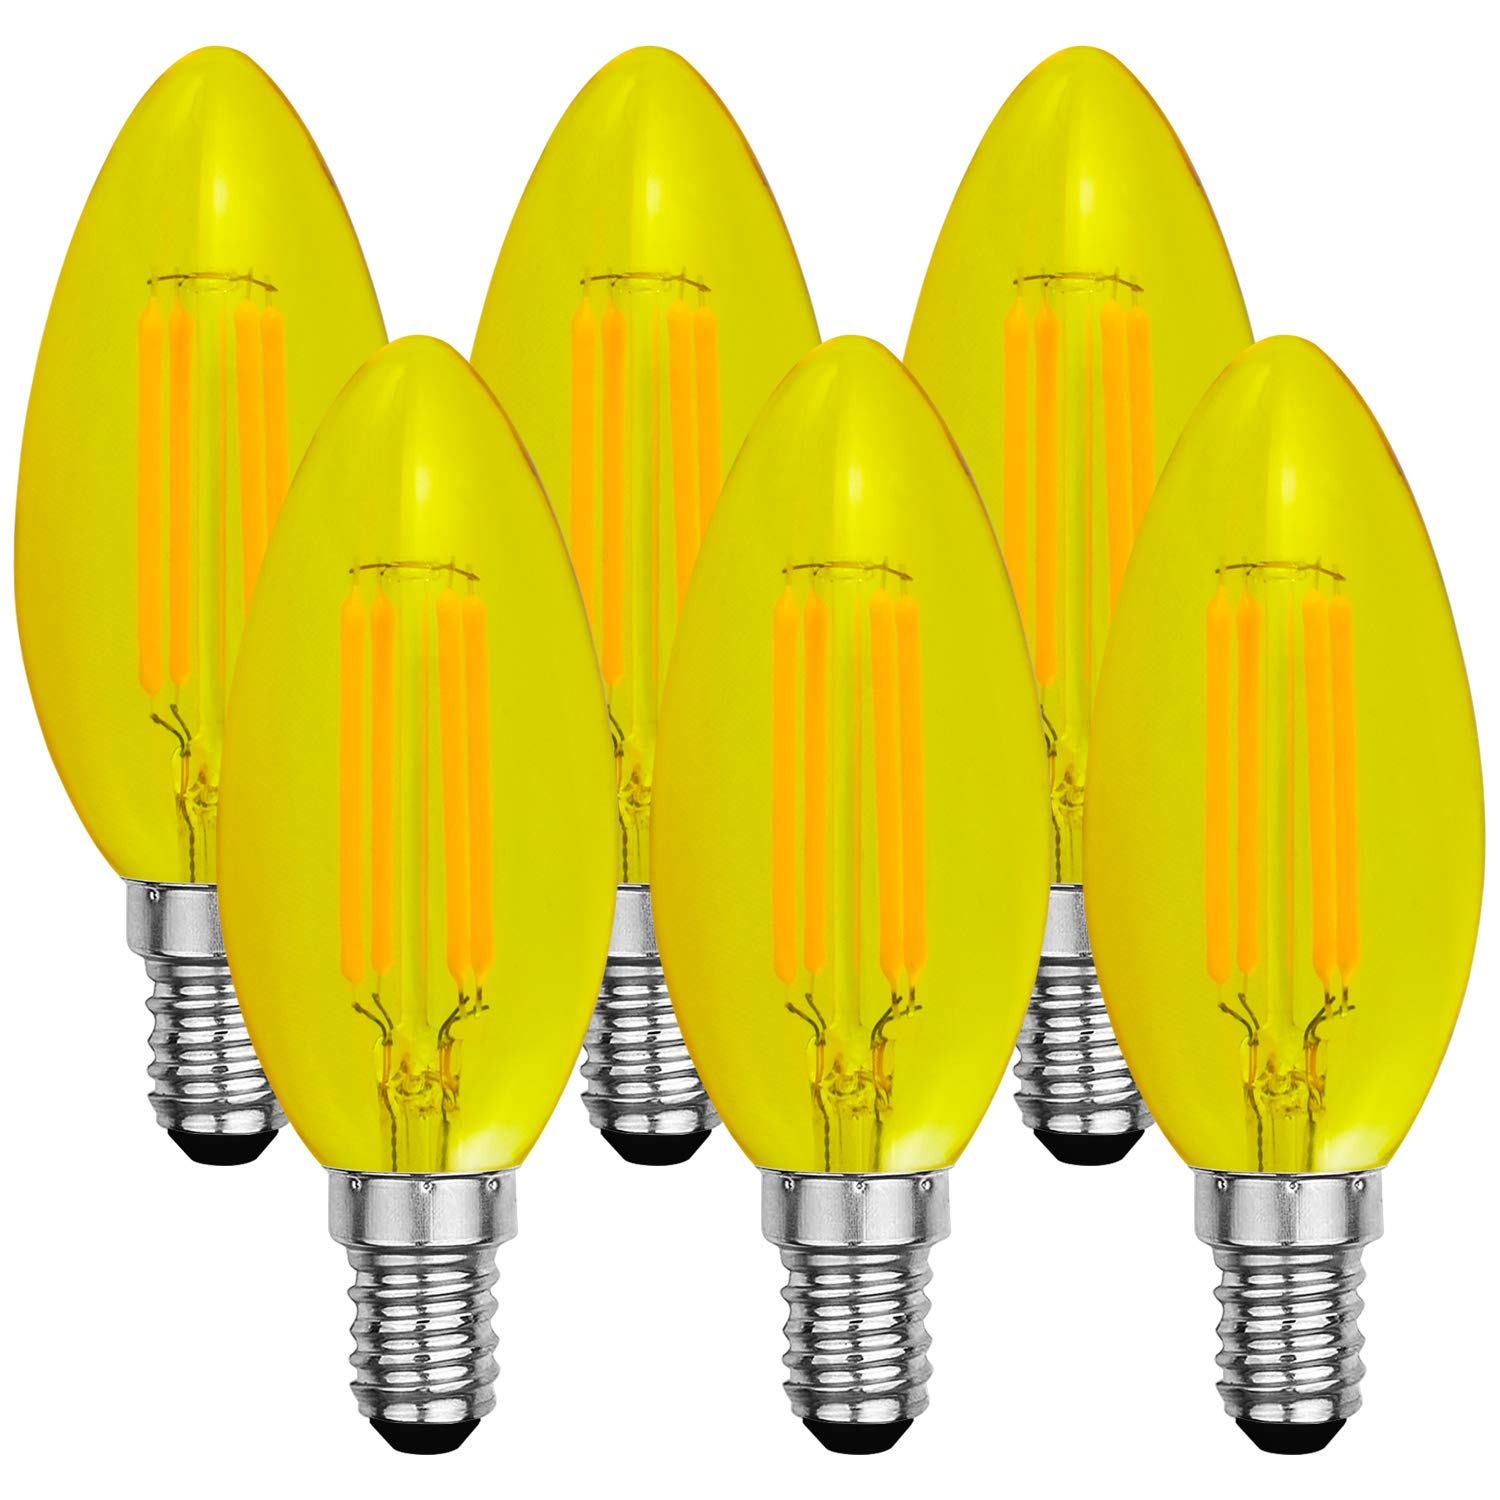 Luxrite Yellow LED Light Bulb, 4W, Dimmable LED Filament Bulb, E12 Candelabra Base, UL Listed - Front Porch Light, Bug Light Bulb (6 Pack)